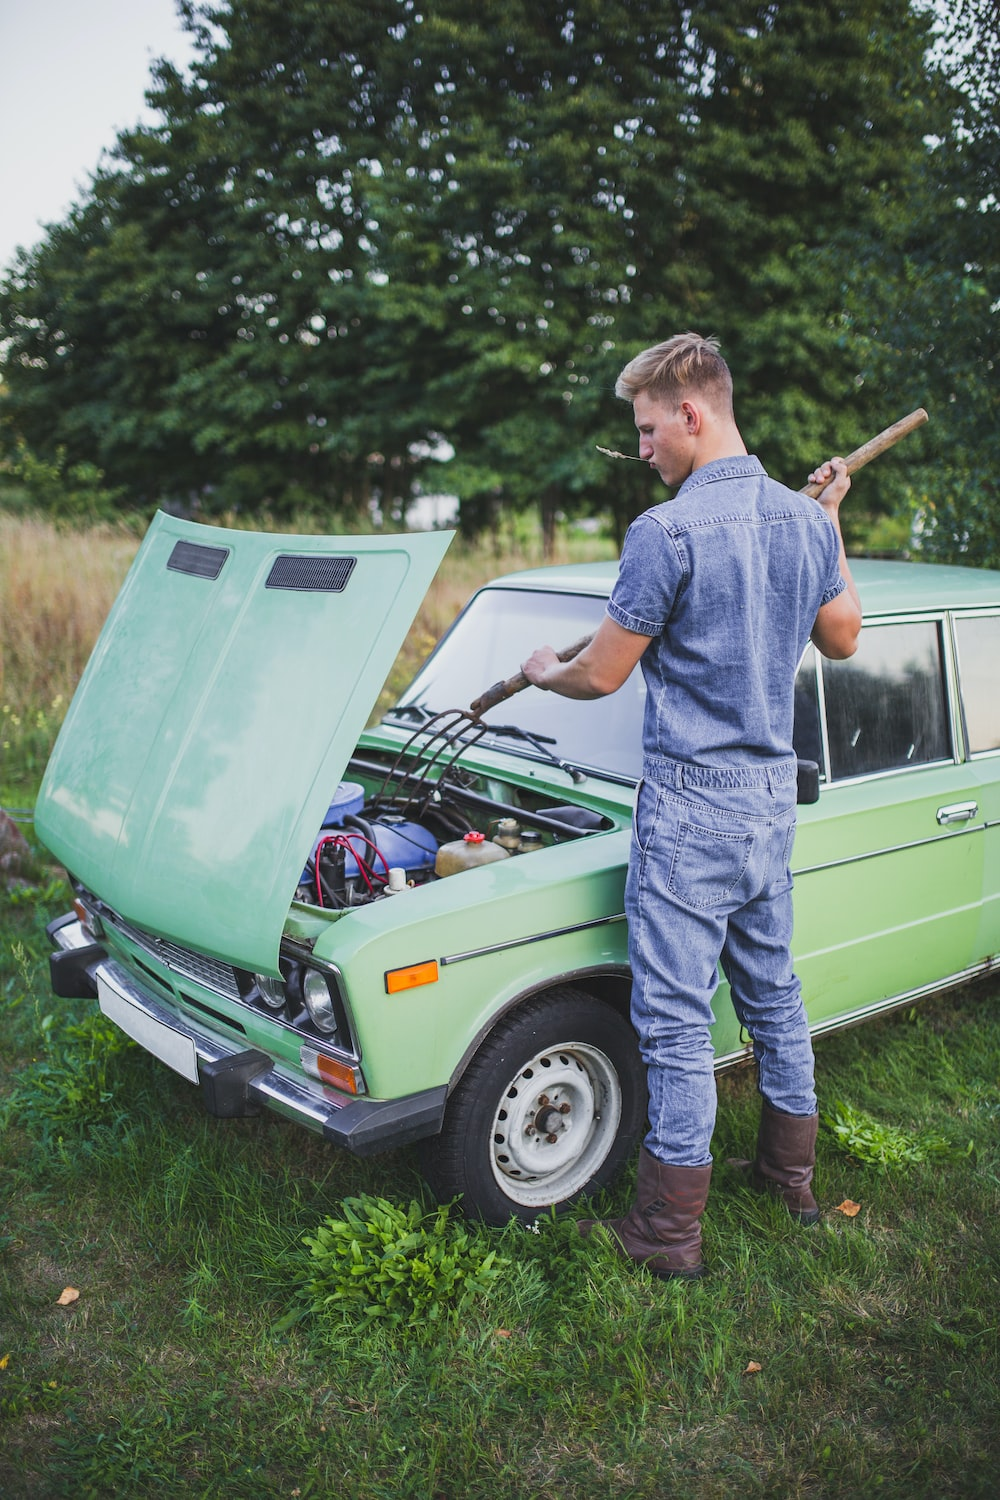 man in blue top fixing green car during daytime